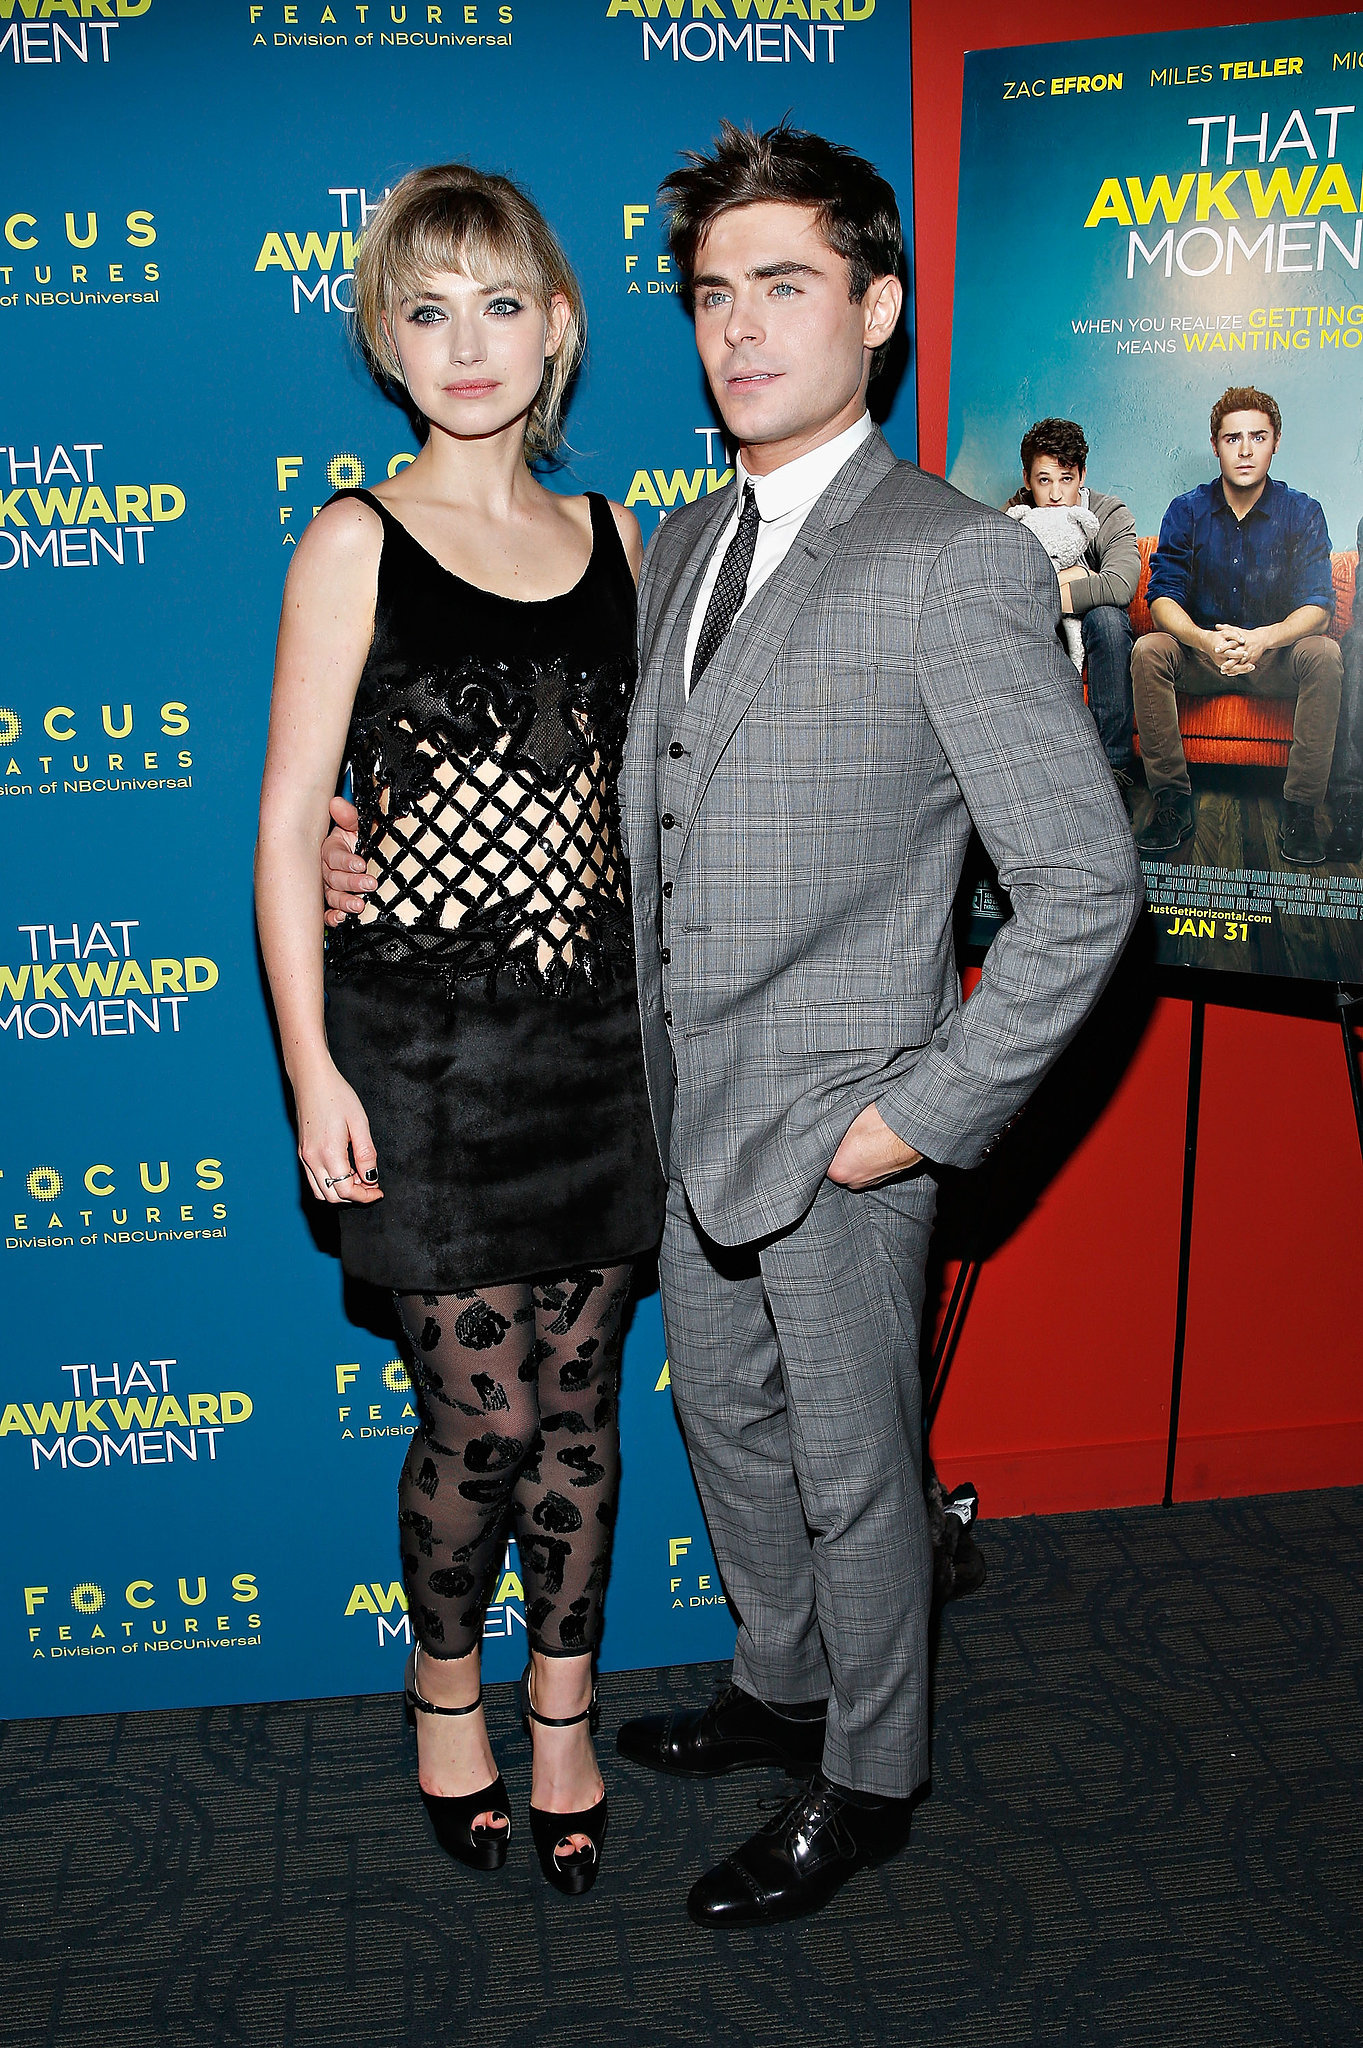 Zac and Imogen made a good-looking red carpet pair.